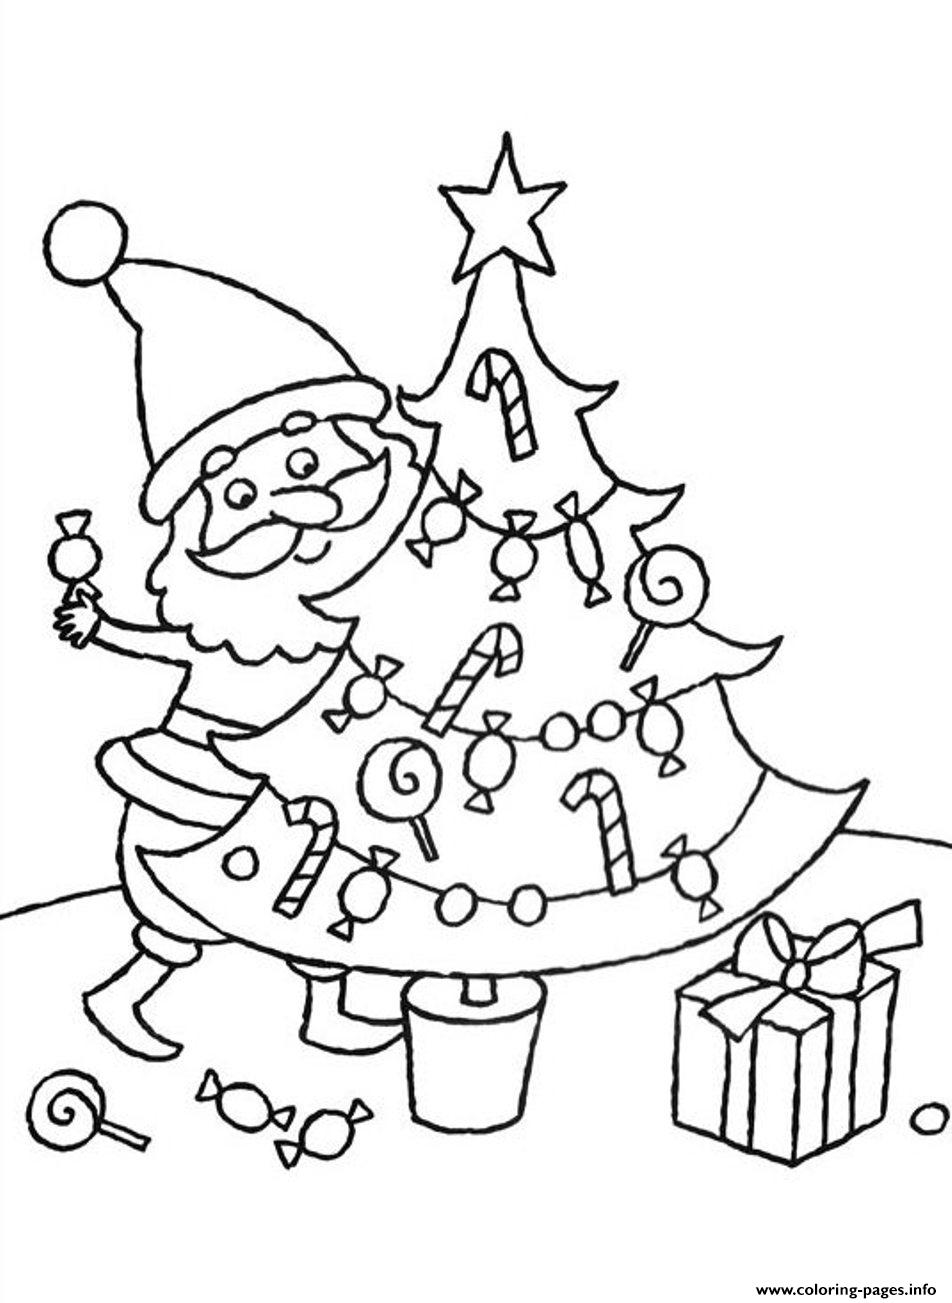 Santa Decorating Christmas Tree Free S Christmas6a80 Coloring Pages ...